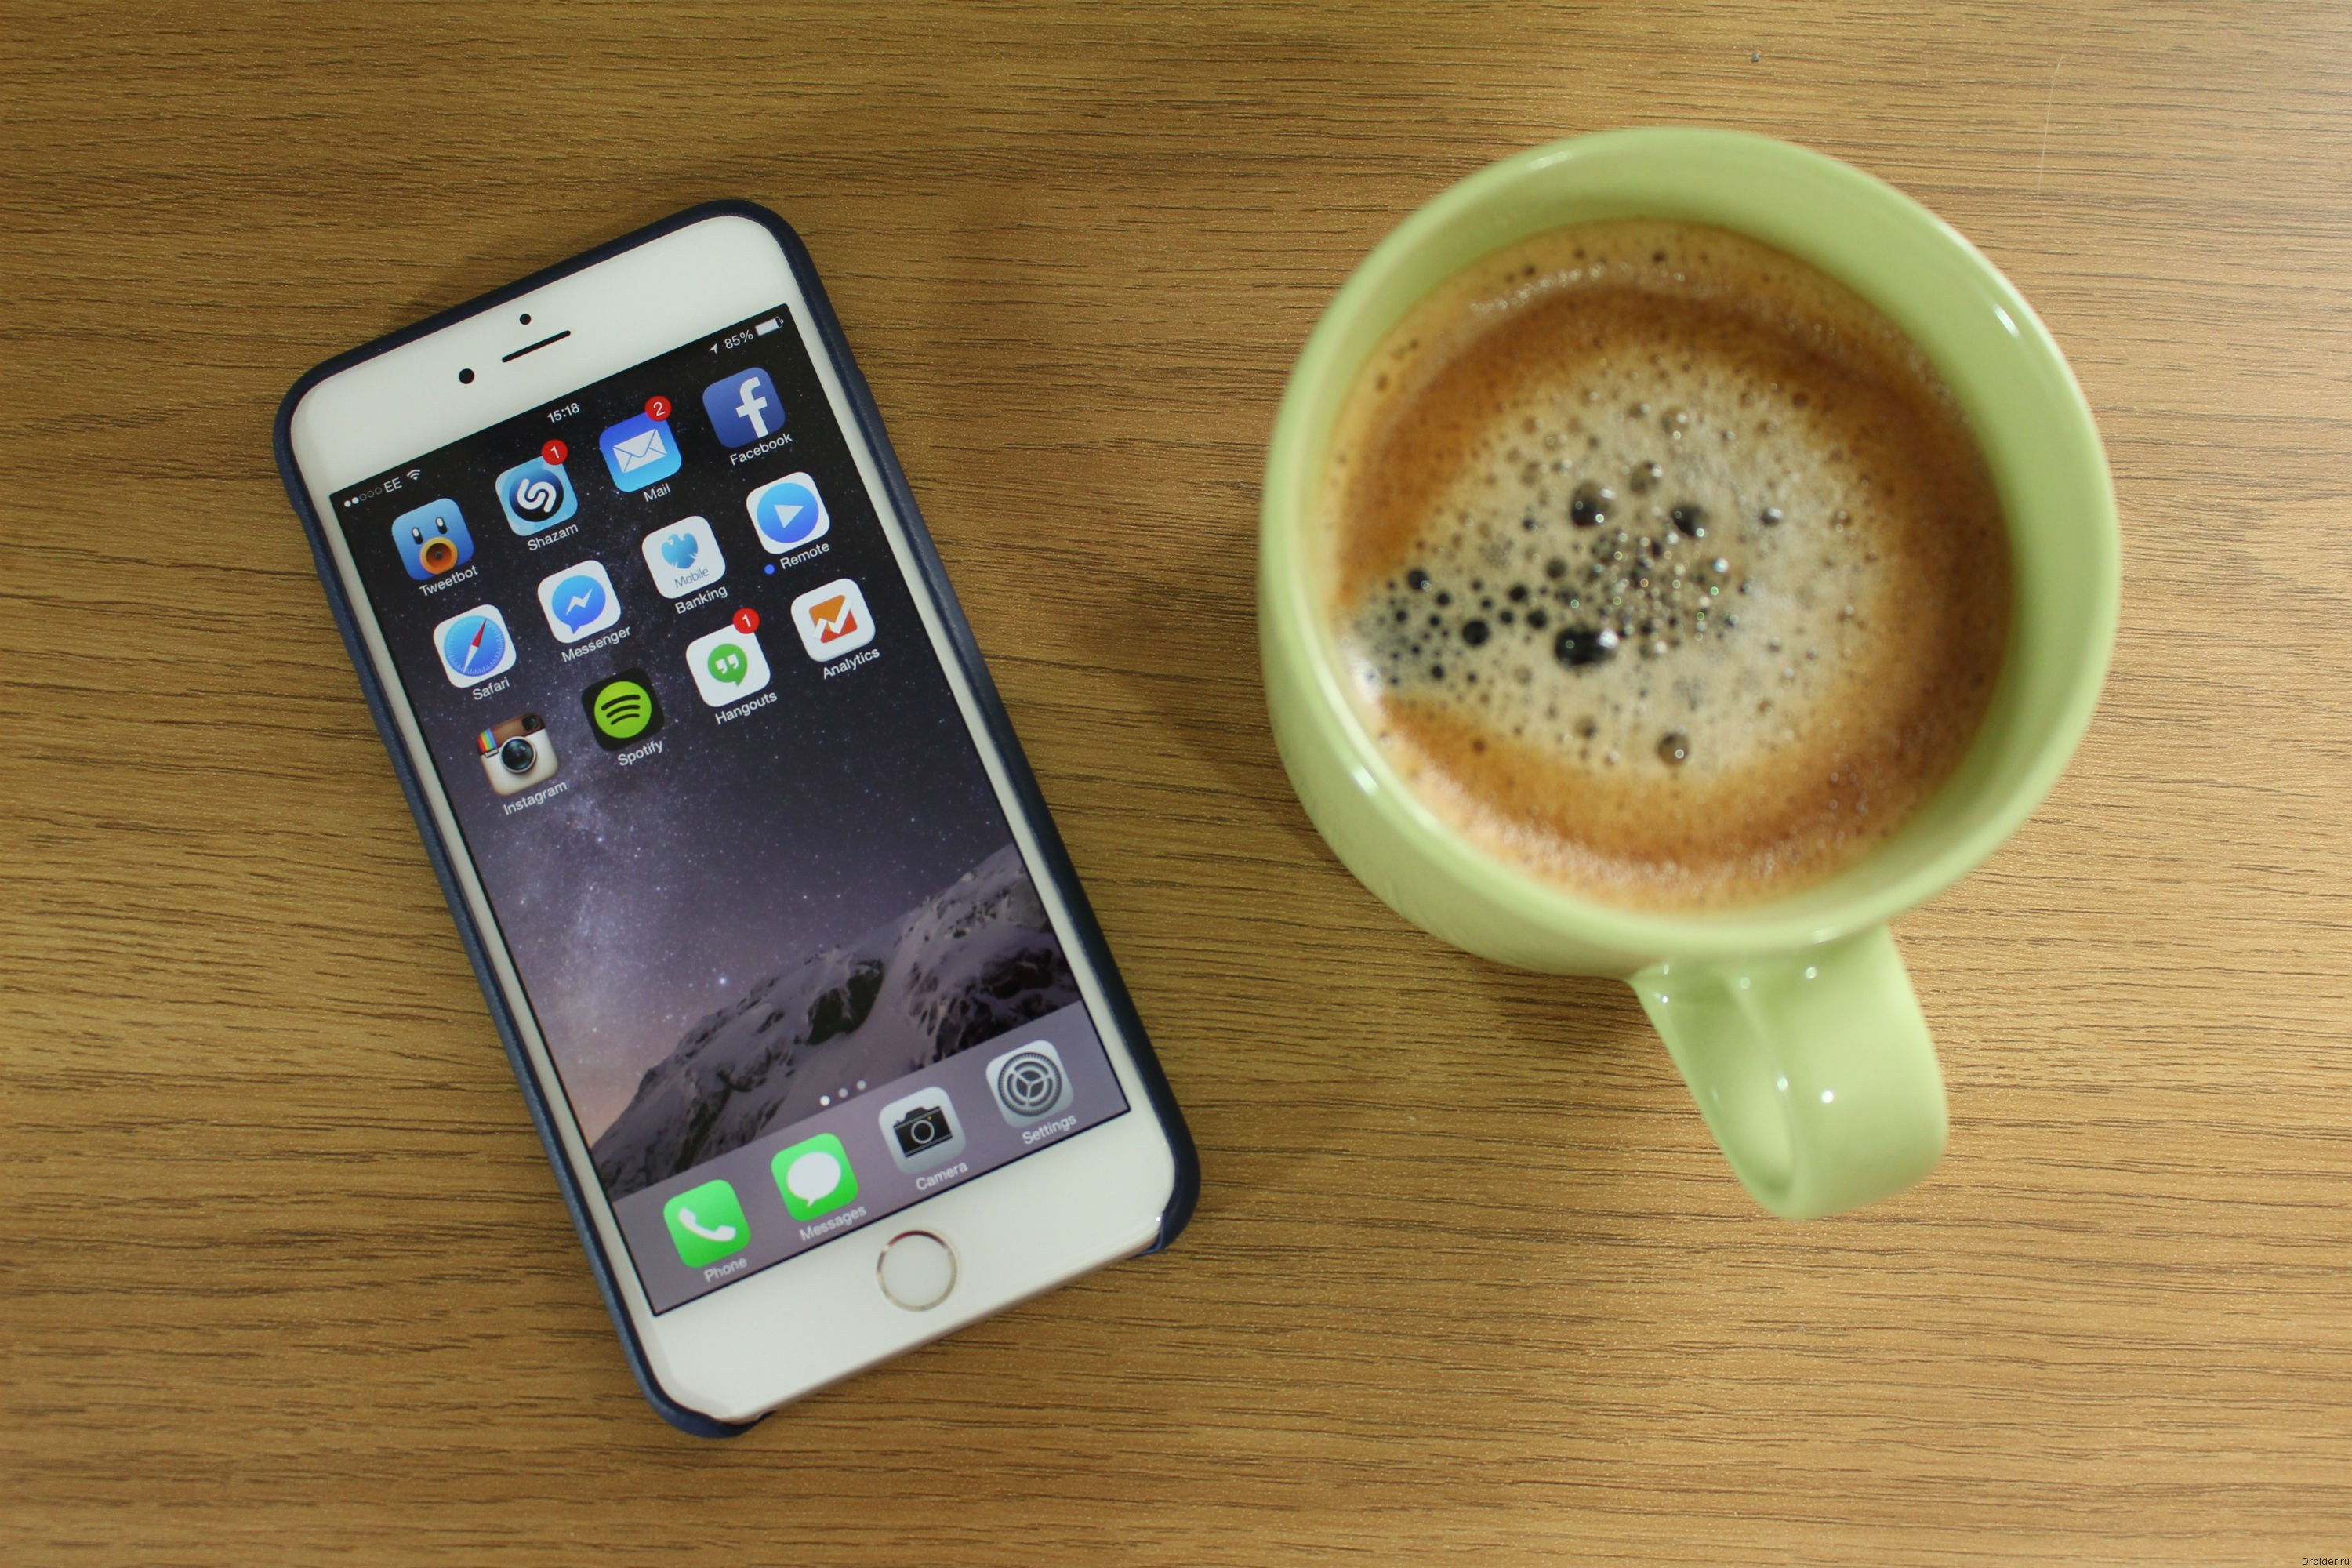 Смартфон iPhone 6 Plus от Apple